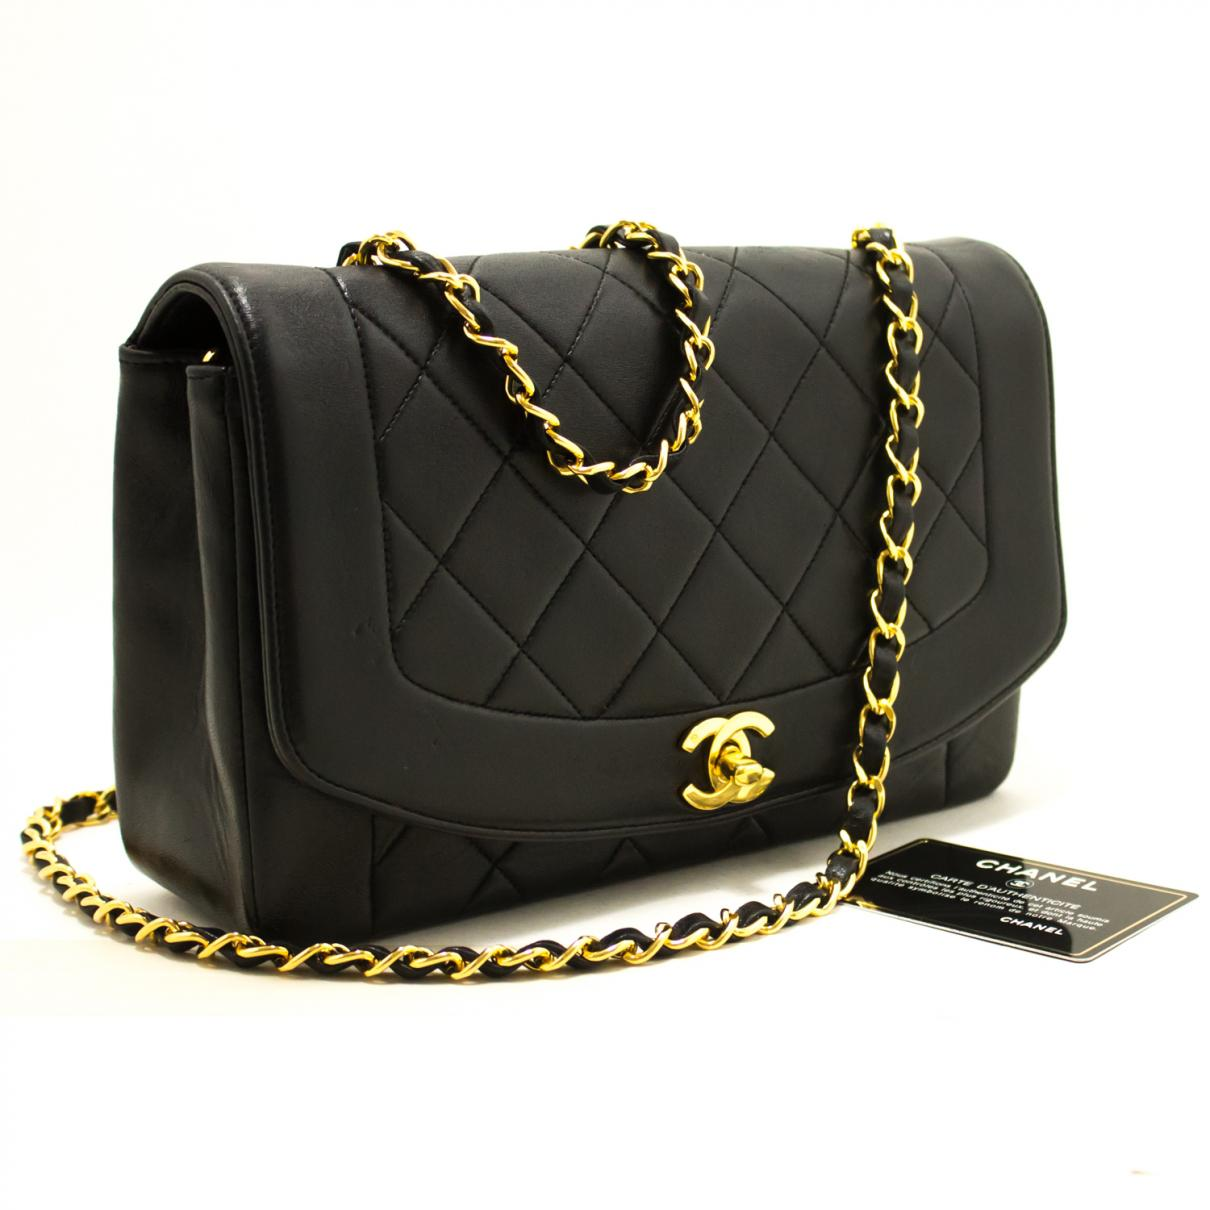 52d67f97c93e Lyst - Chanel Pre-owned Vintage Diana Black Leather Handbags in Black